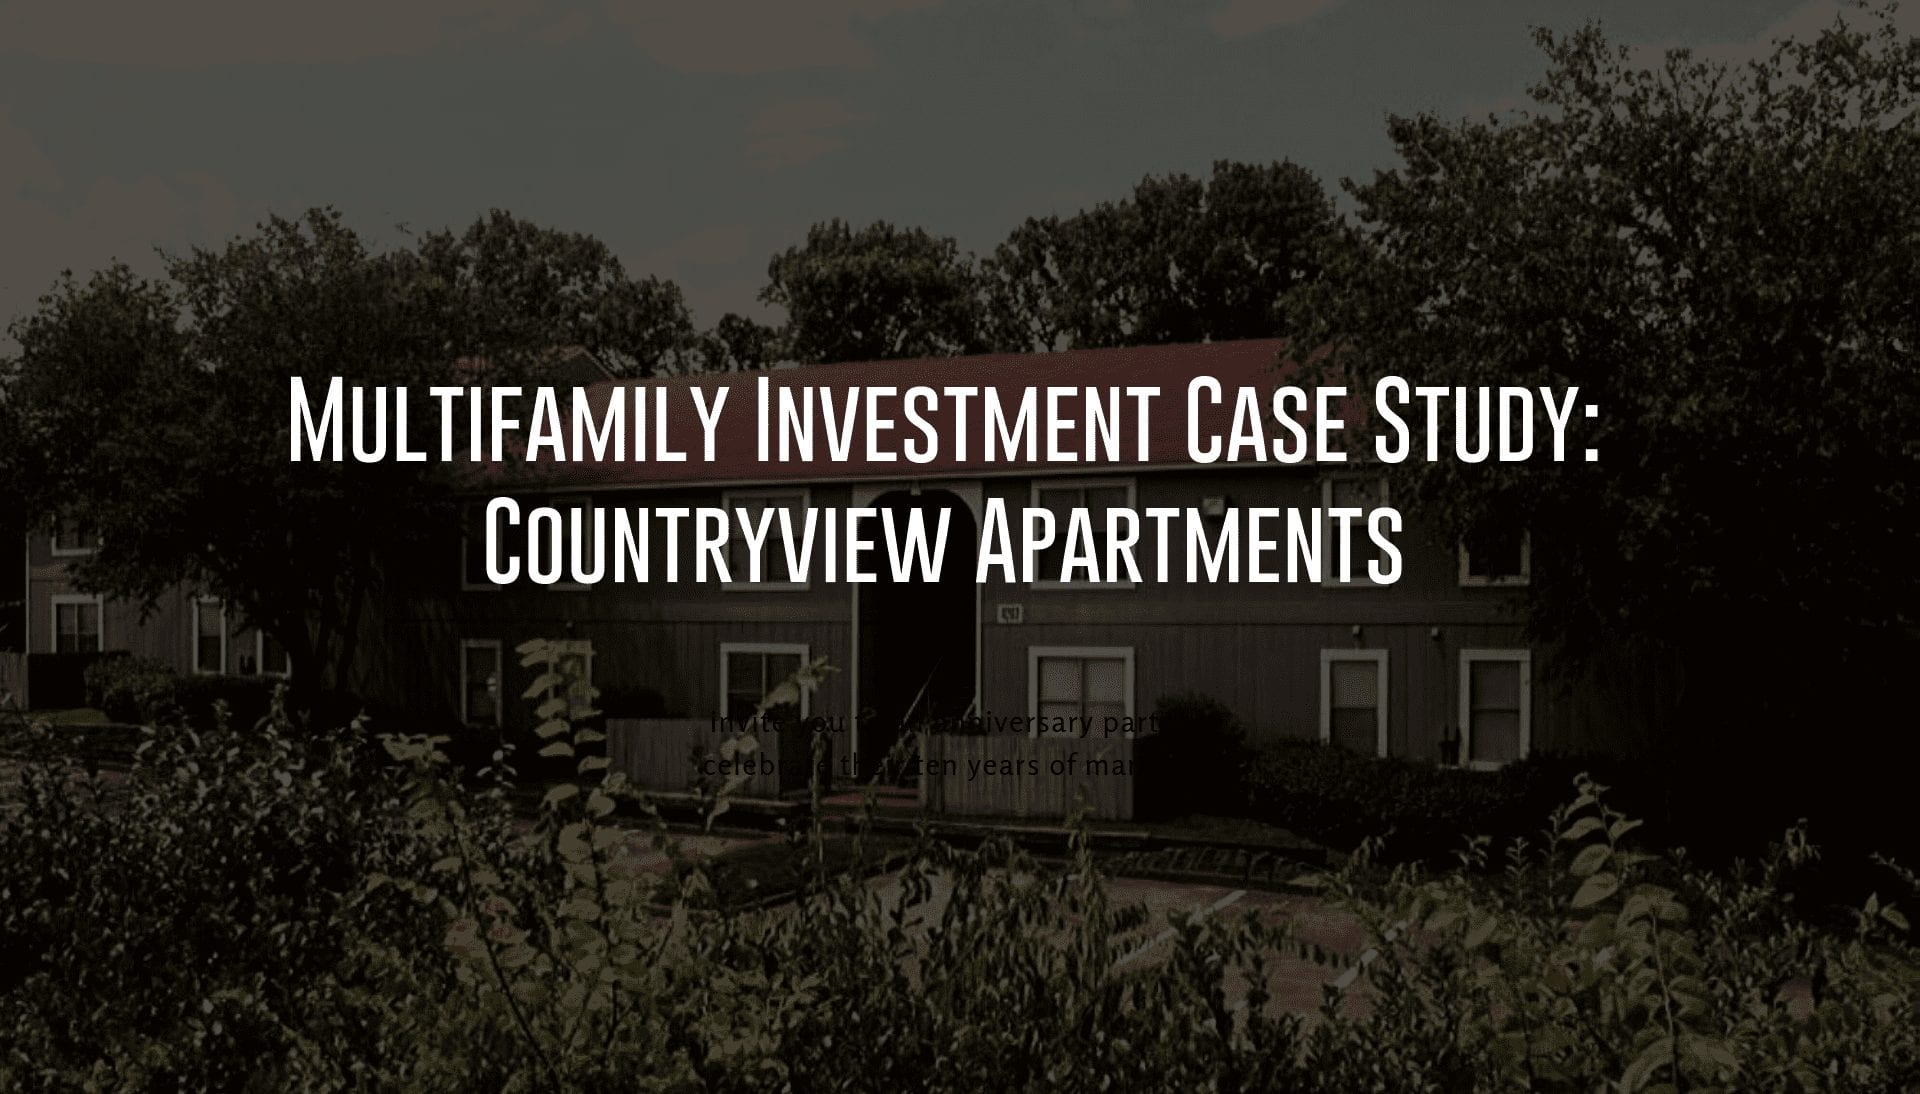 Multifamily Investment Case Study: Countryview Apartments